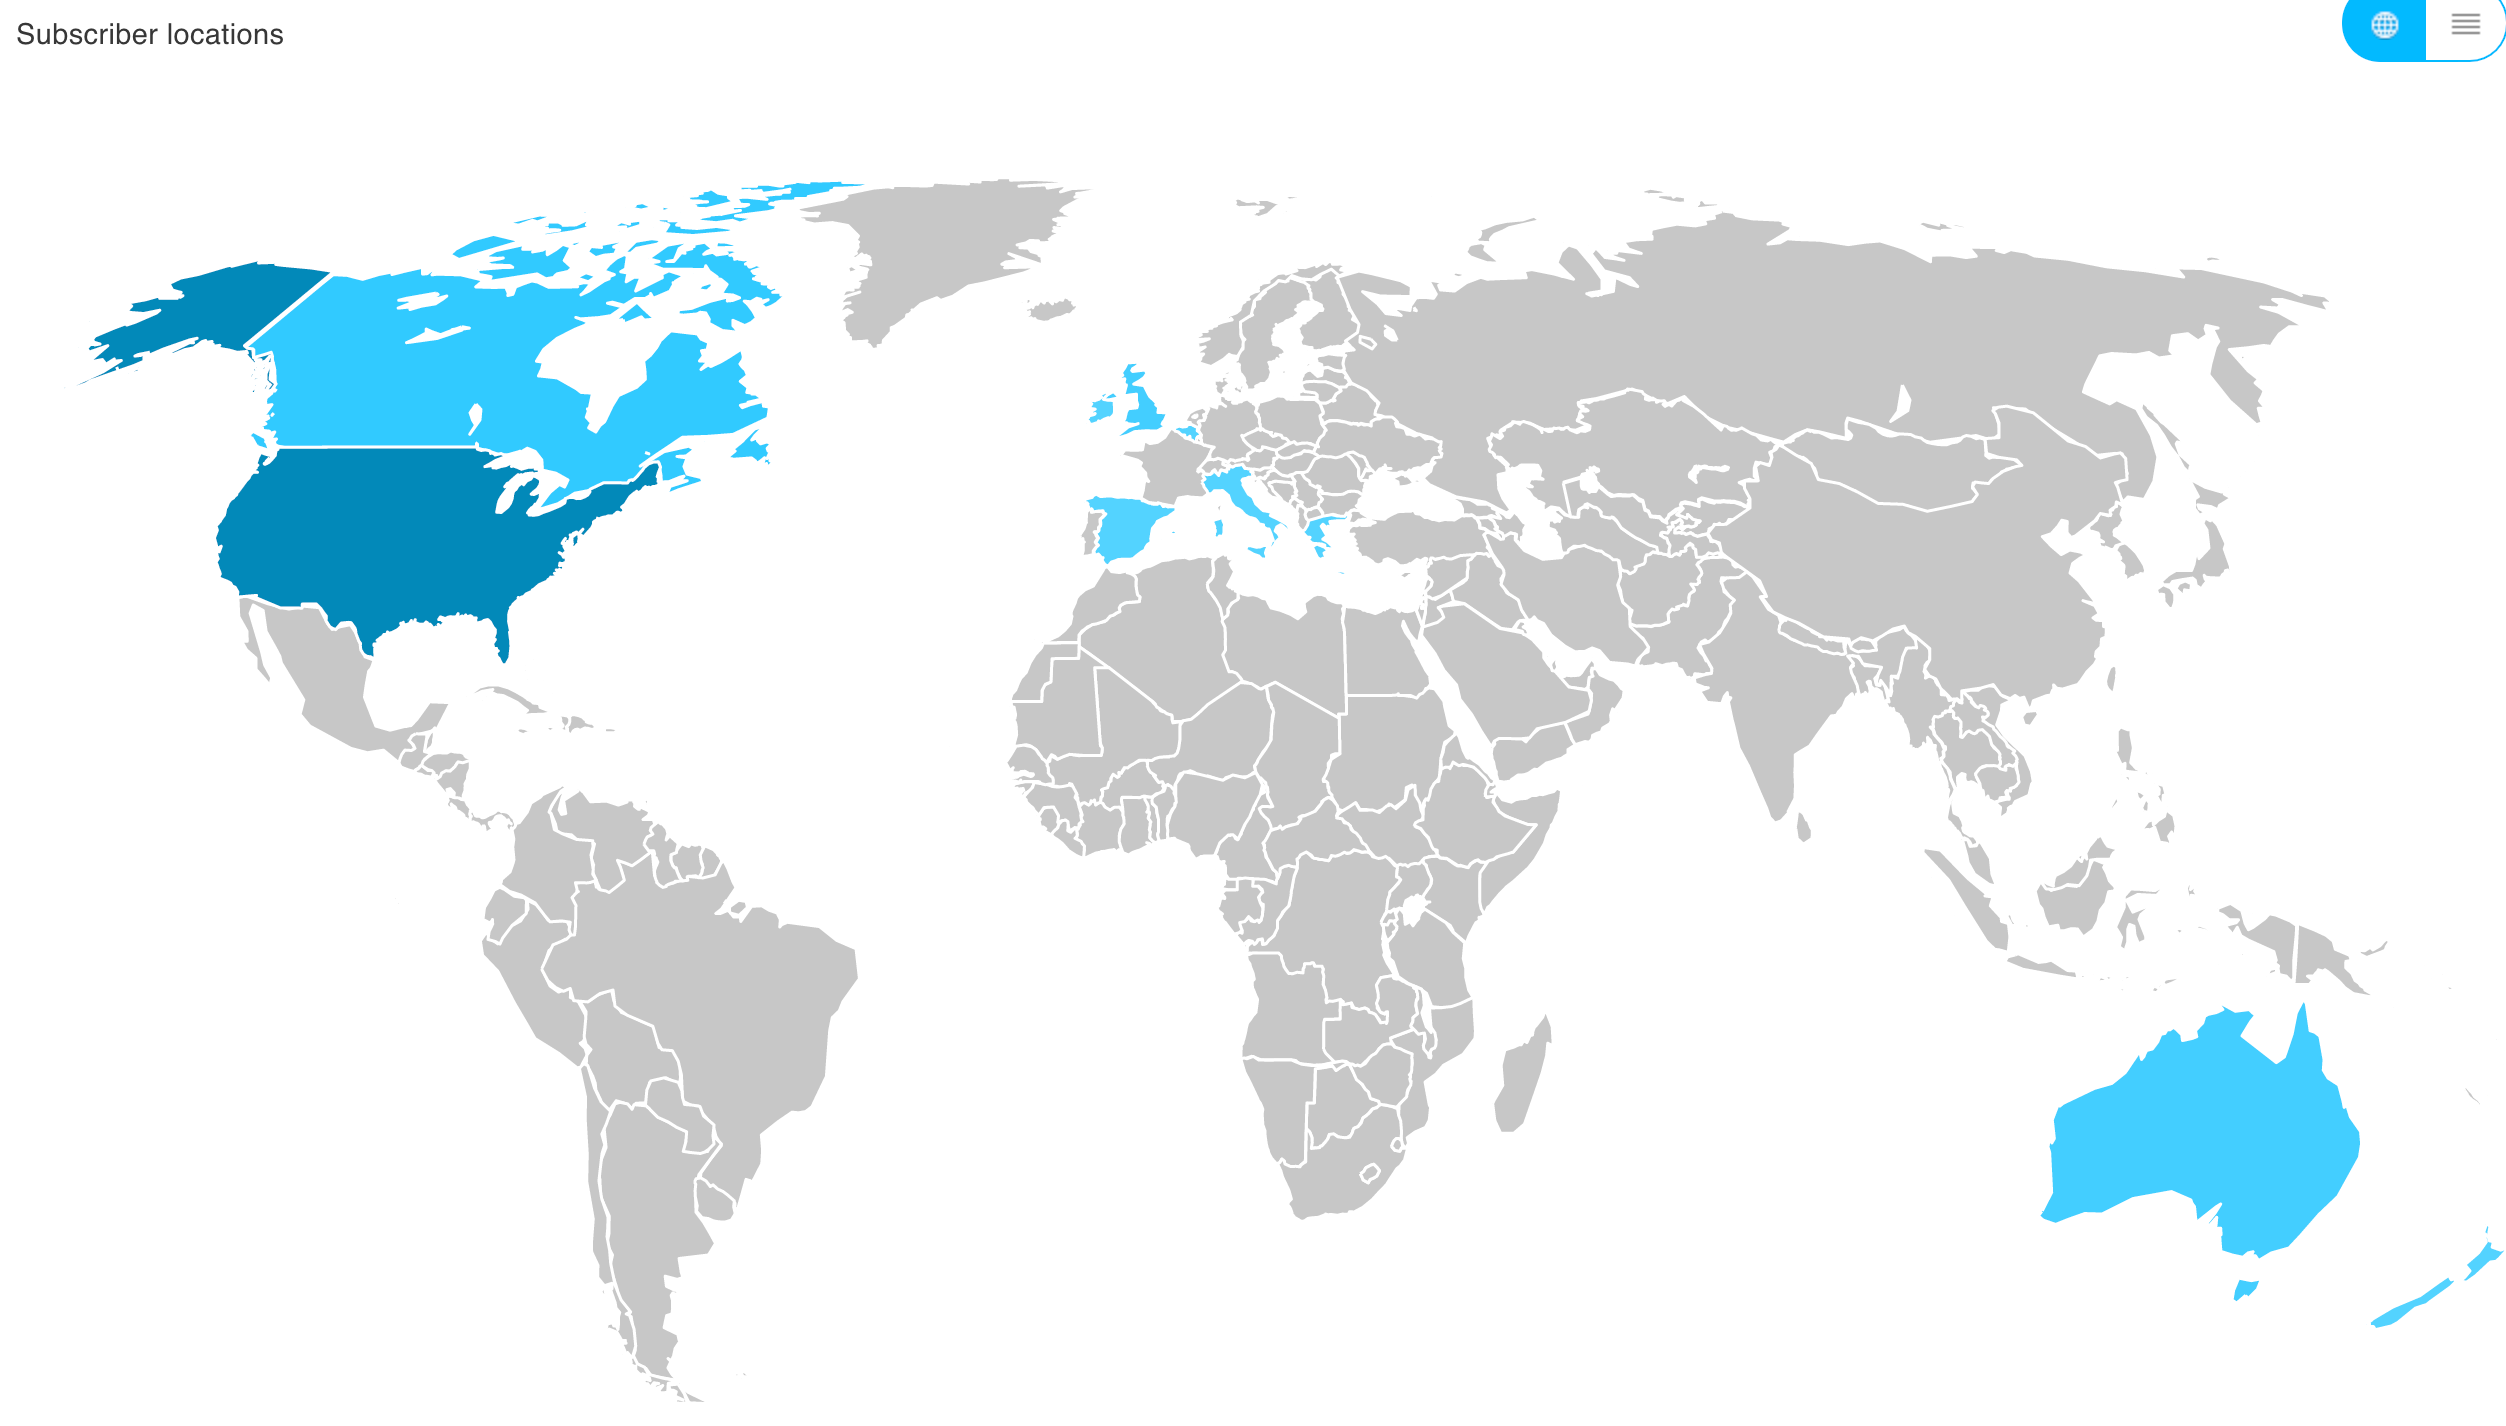 subscriber locations